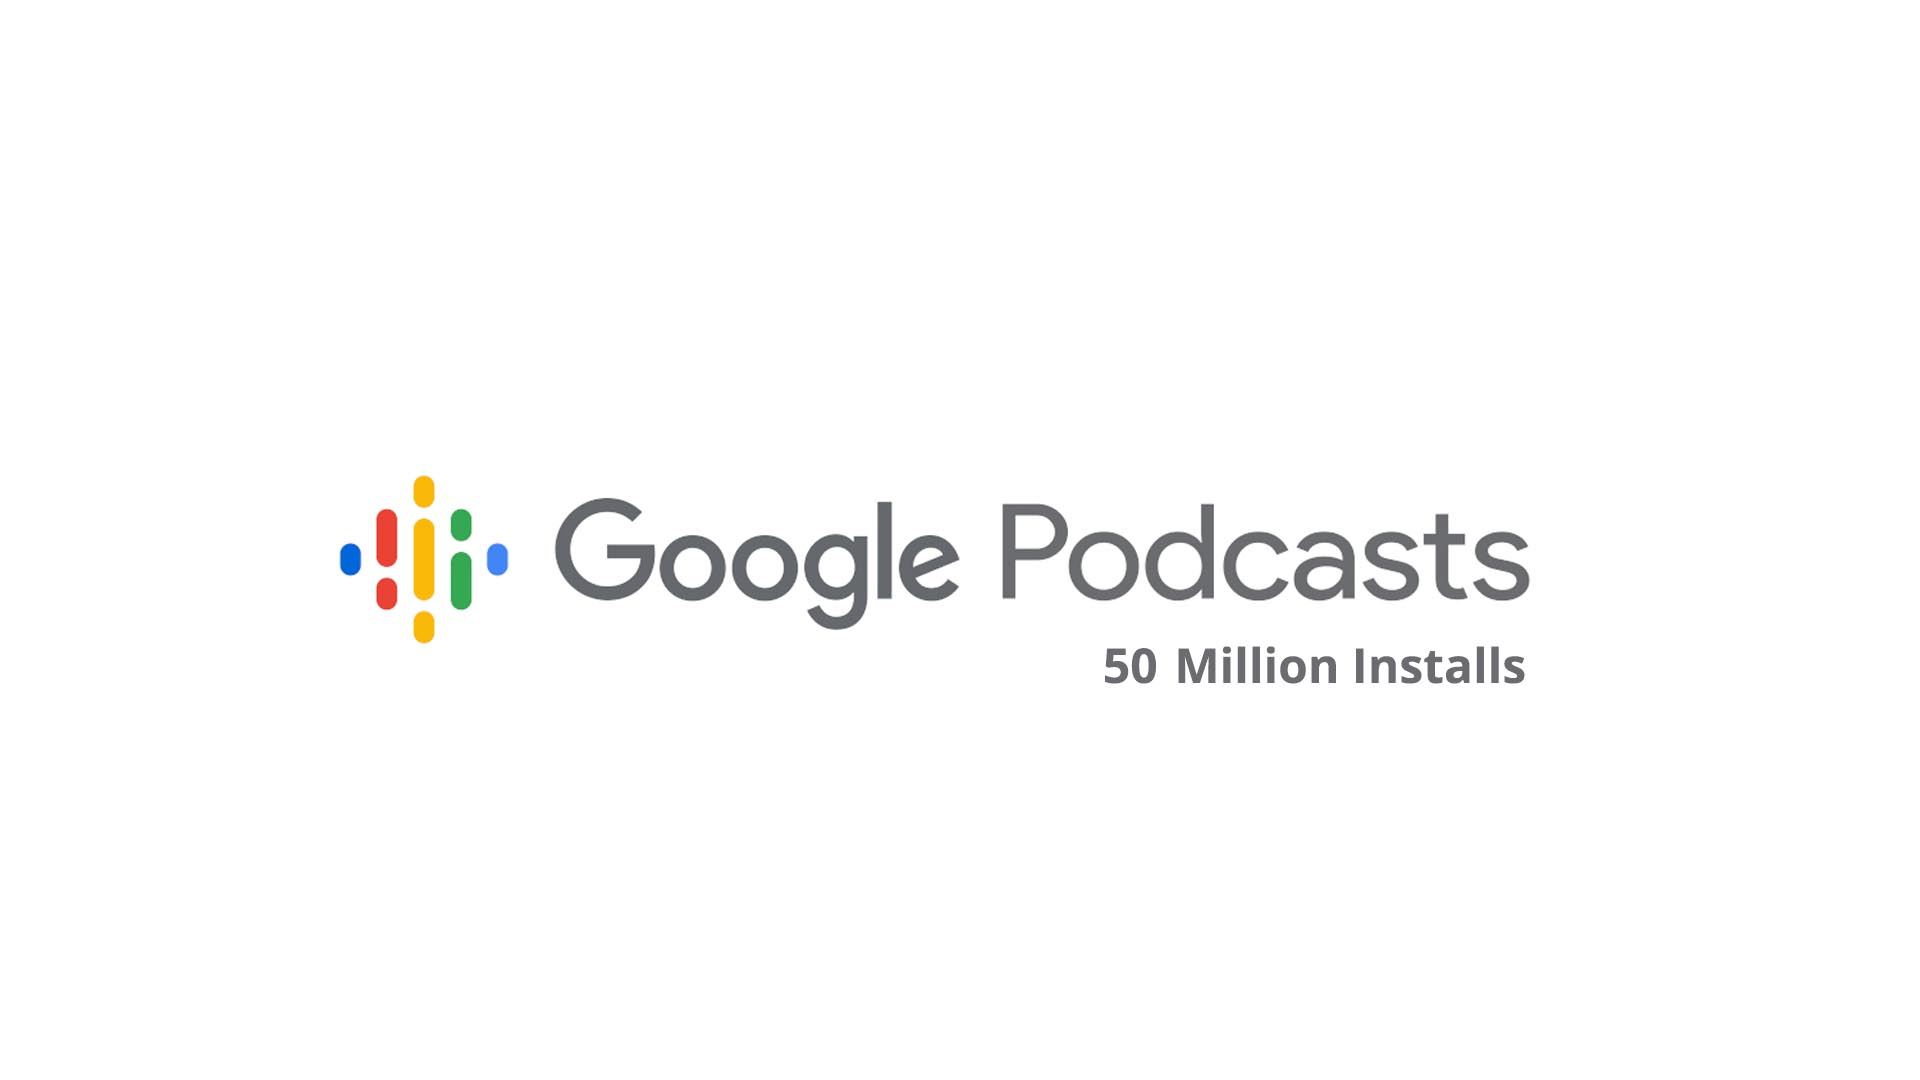 Google Podcasts reaches 50 million installs on the Play Store